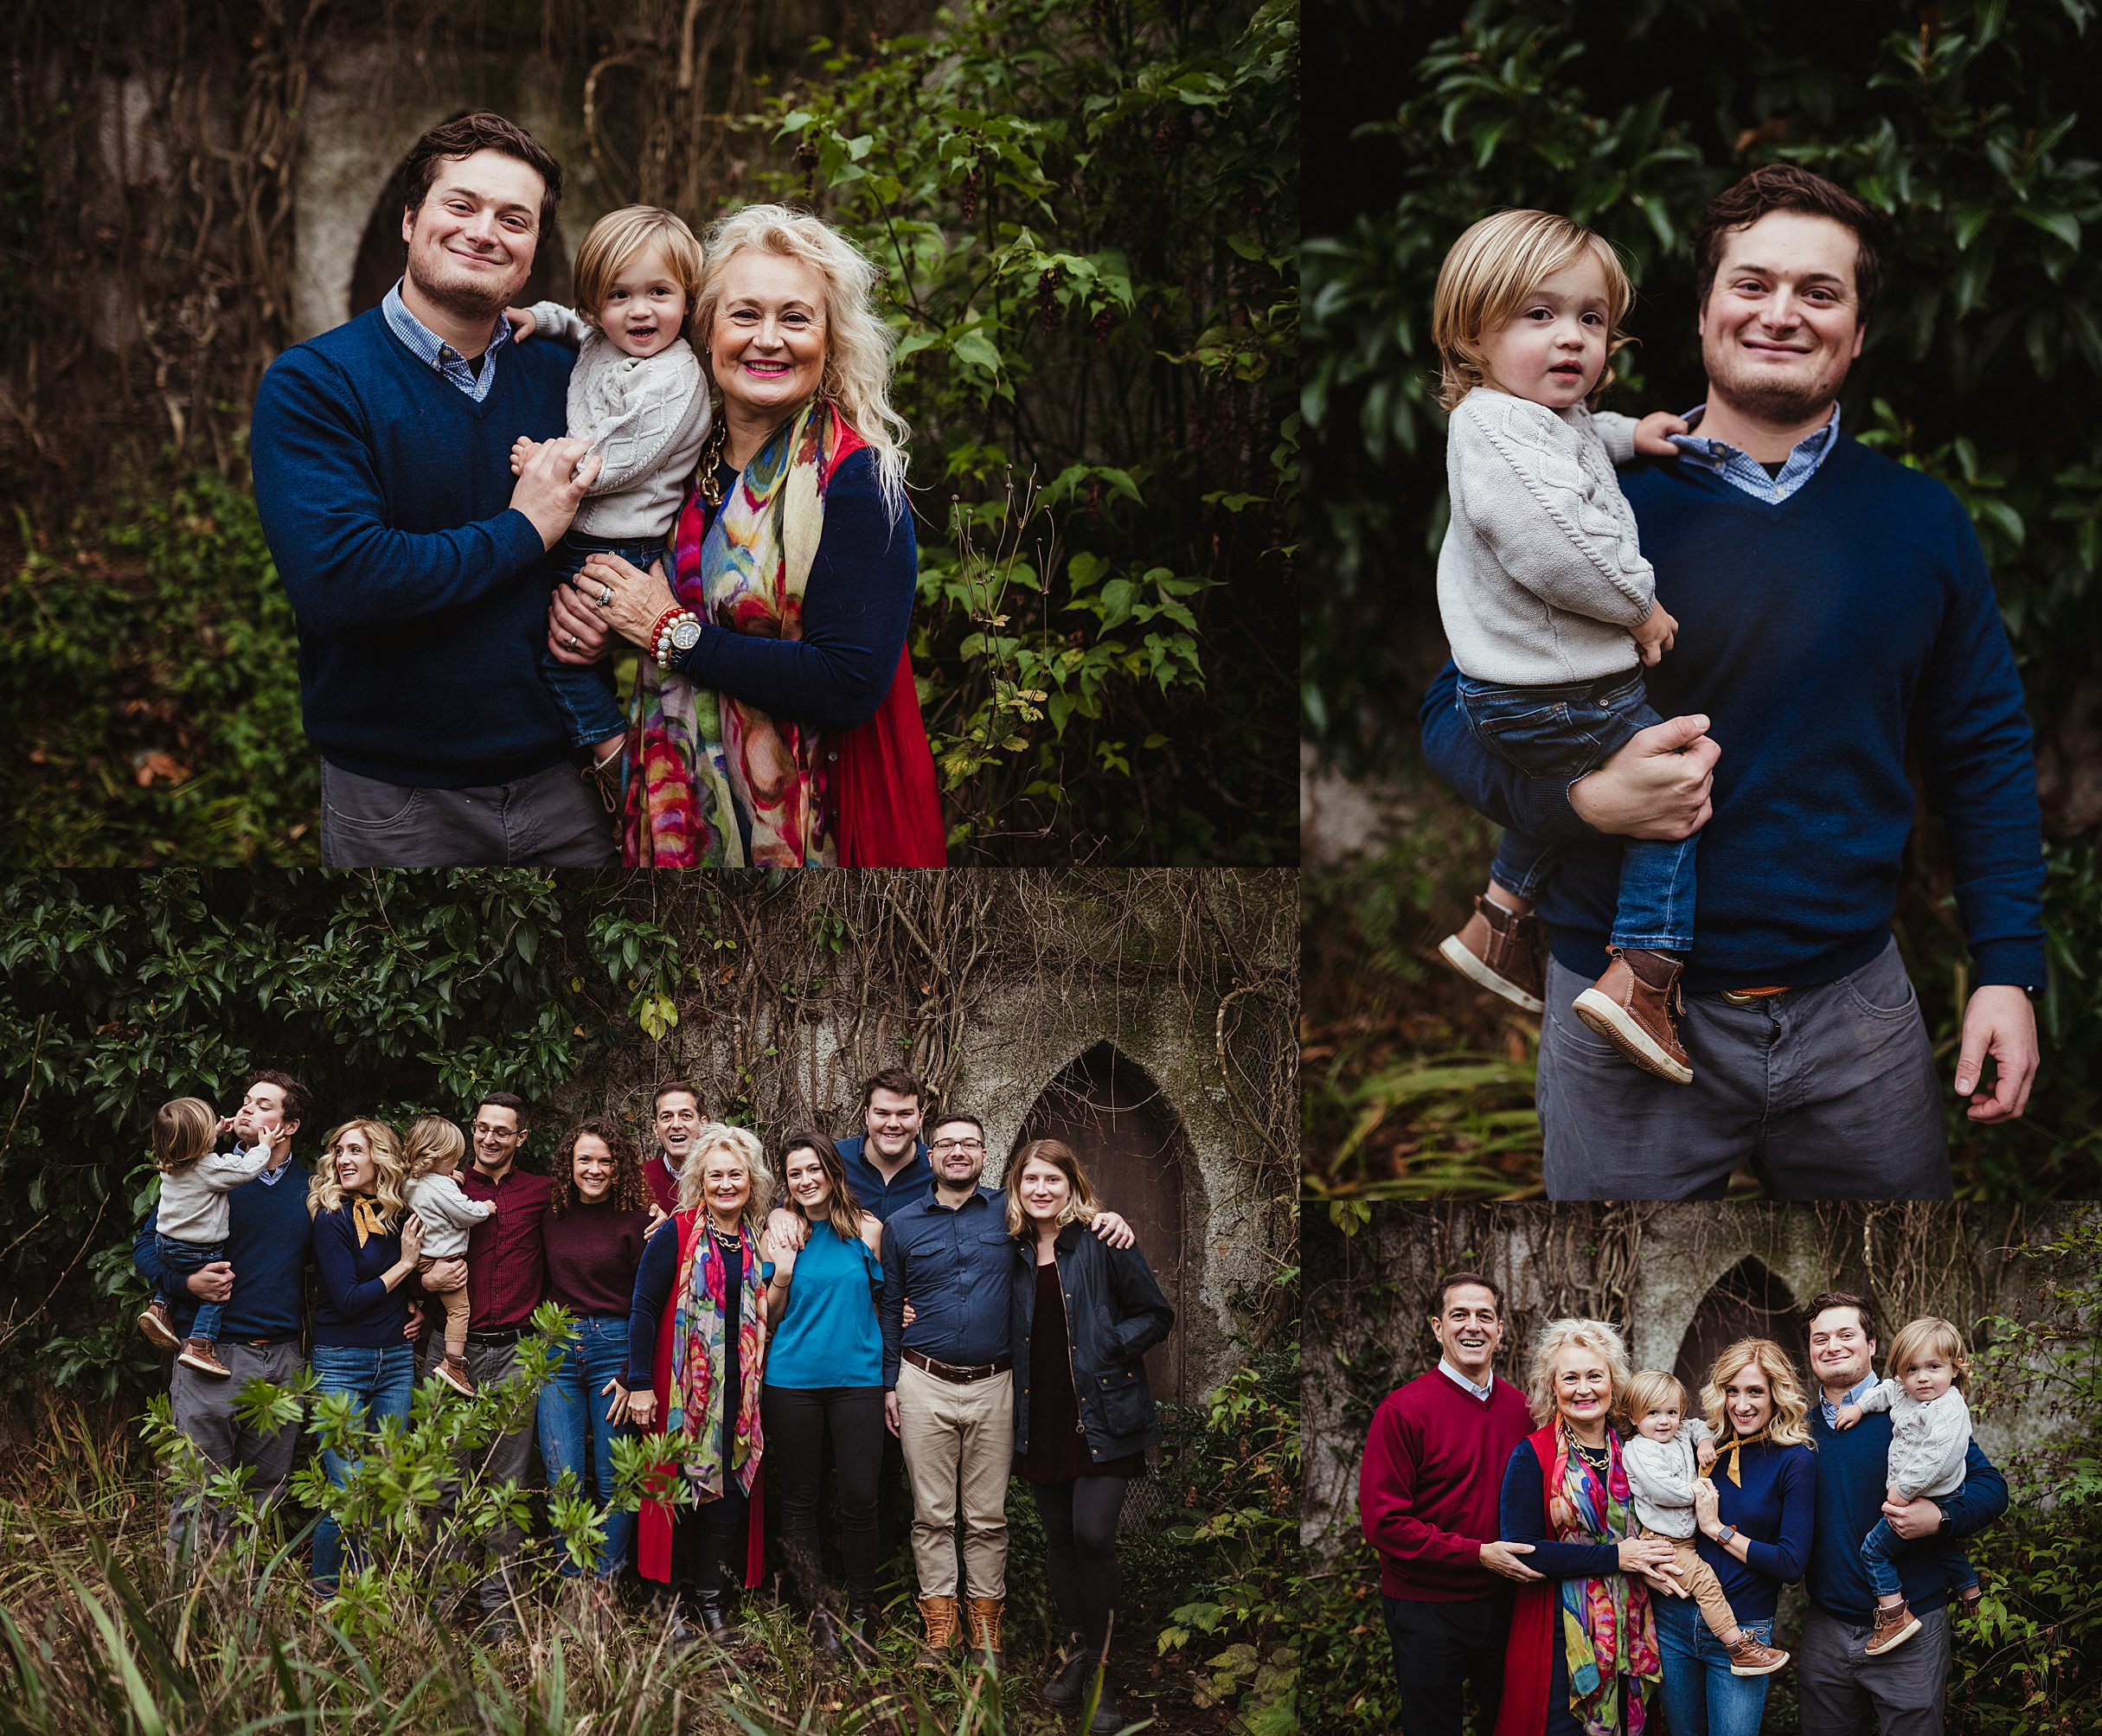 Malahide-Session-Family-Kids-Ireland-1.jpg